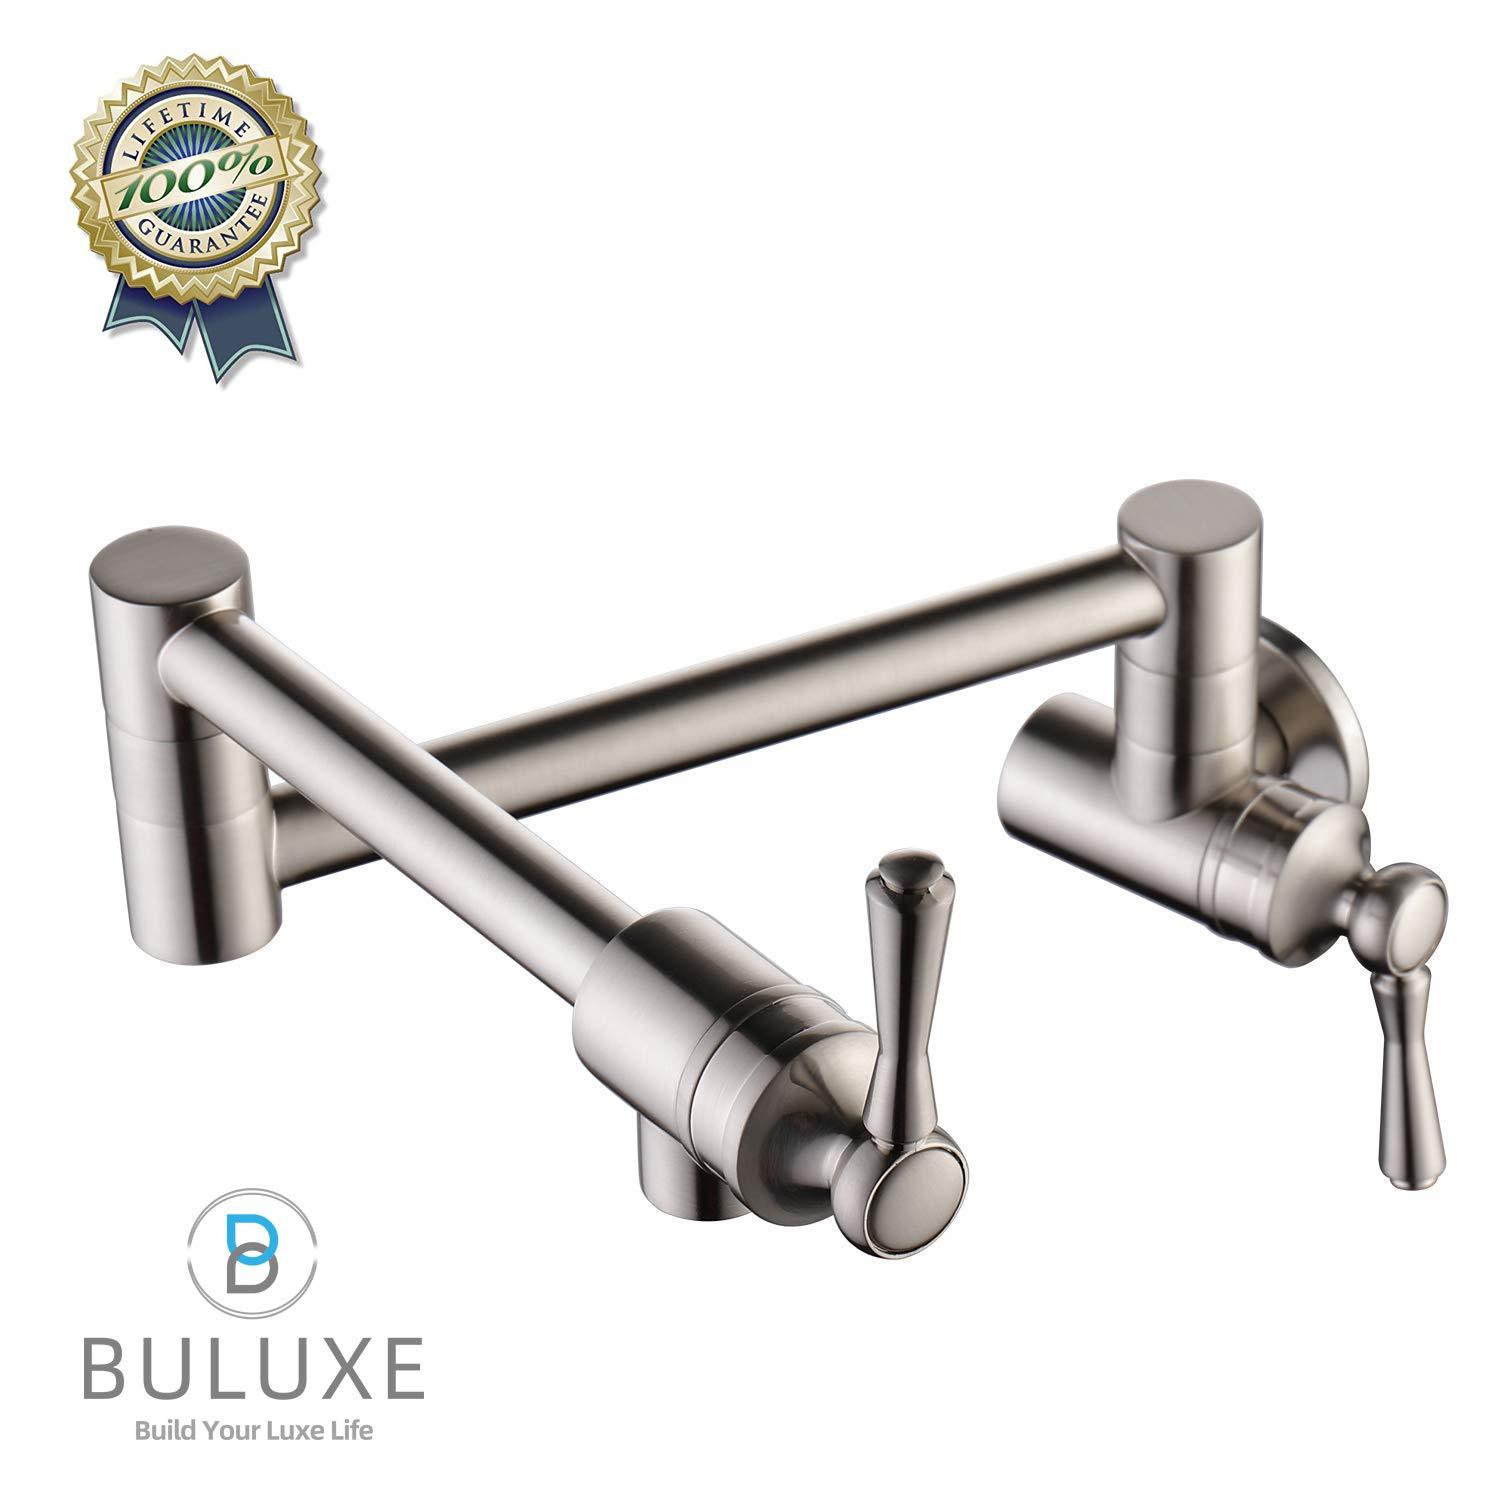 BULUXE Pot Filler Faucet Wall Mount Kitchen Faucets Stainless Steel Brushed Nickel Hot or Cold Water Faucet for Kitchen Dual Handle Stretchable 360° Swing Arm Foldable Kitchen Faucet Sink Stove by BULUXE